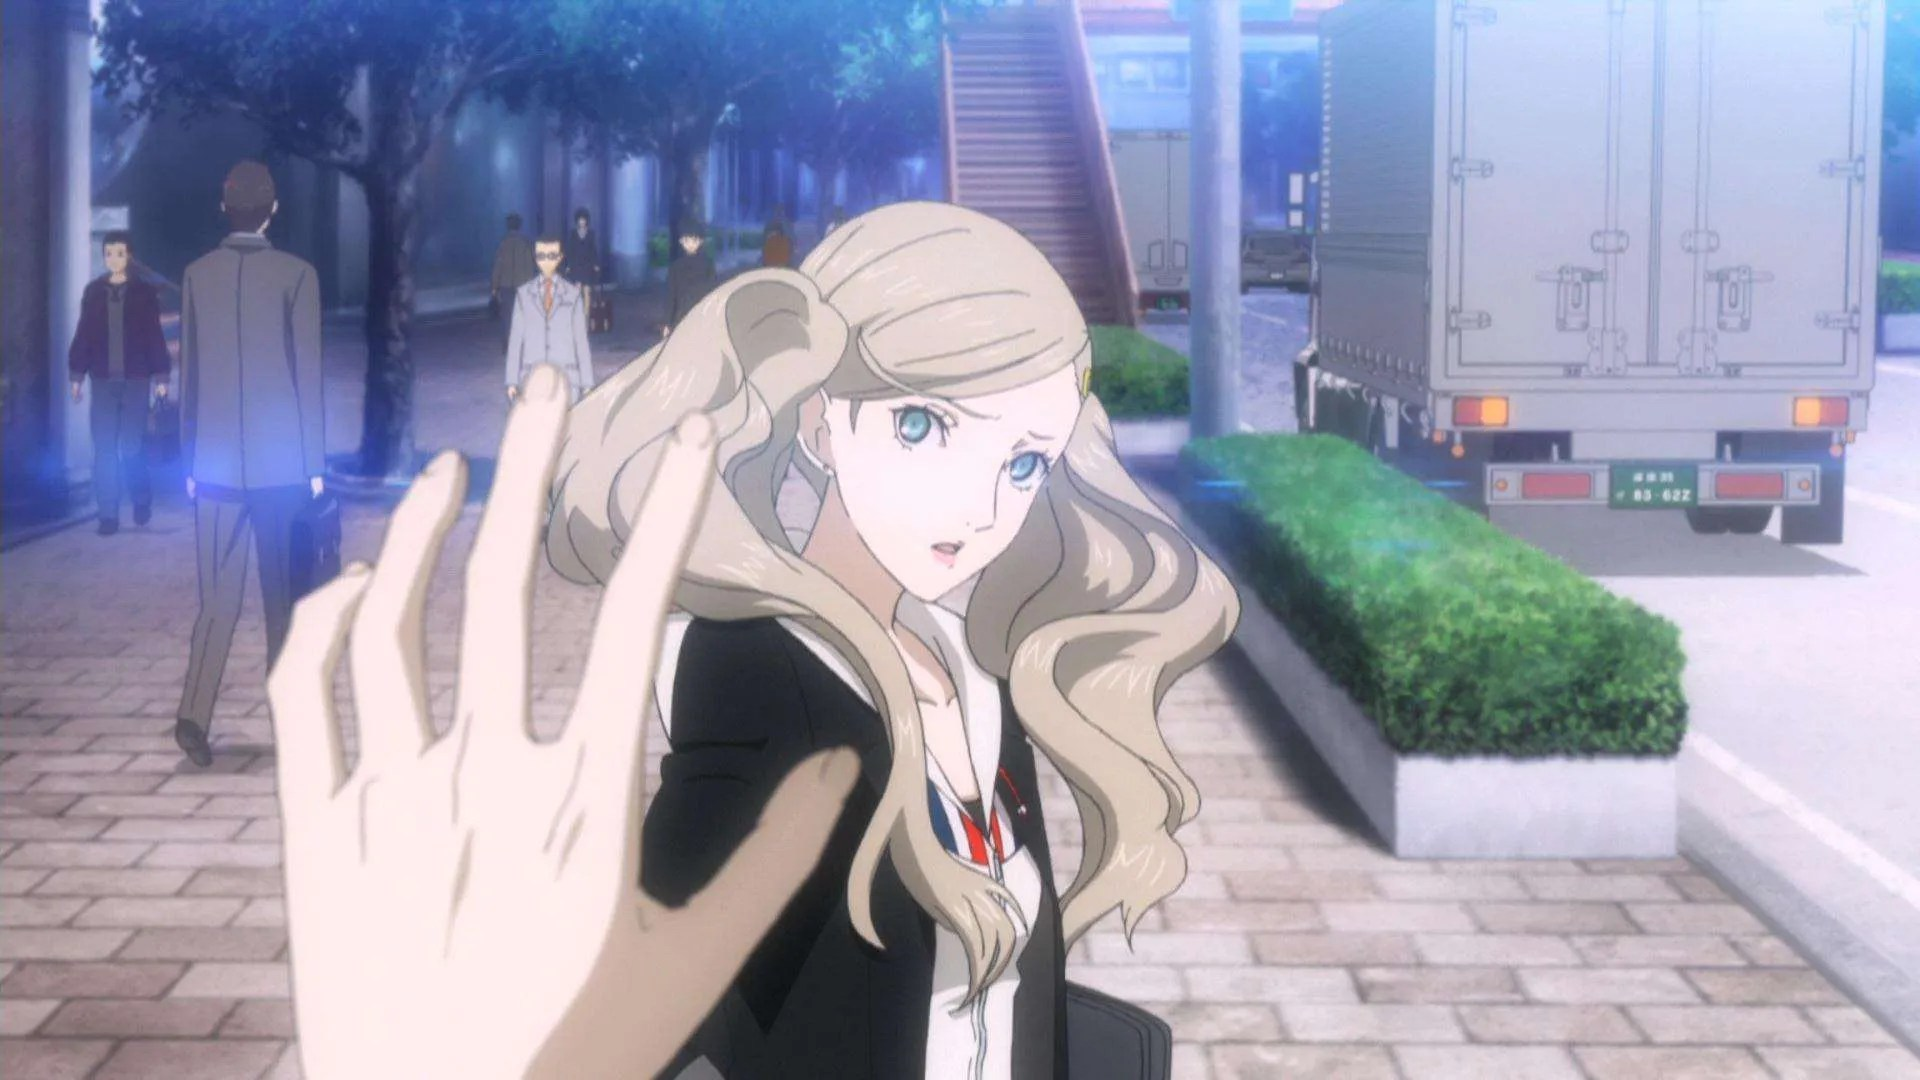 Full Body Girl Wallpaper Pictures From The Persona 5 Pv 02 Trailer Have Leaked